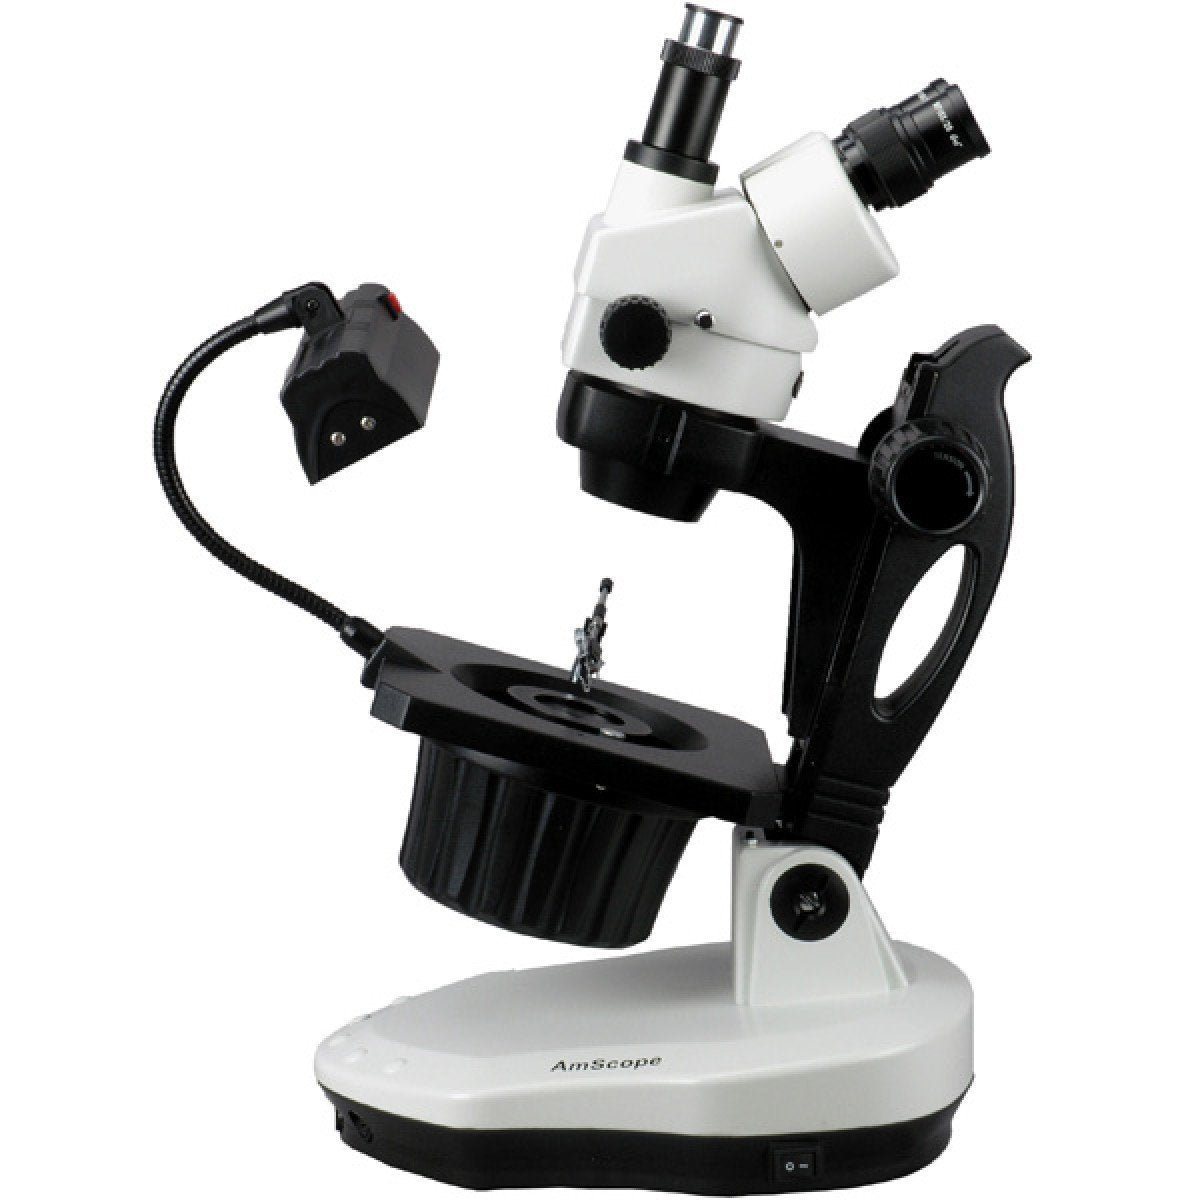 AmScope 3.5X-90X Advanced Jewel Gem Microscope + 5MP Camera